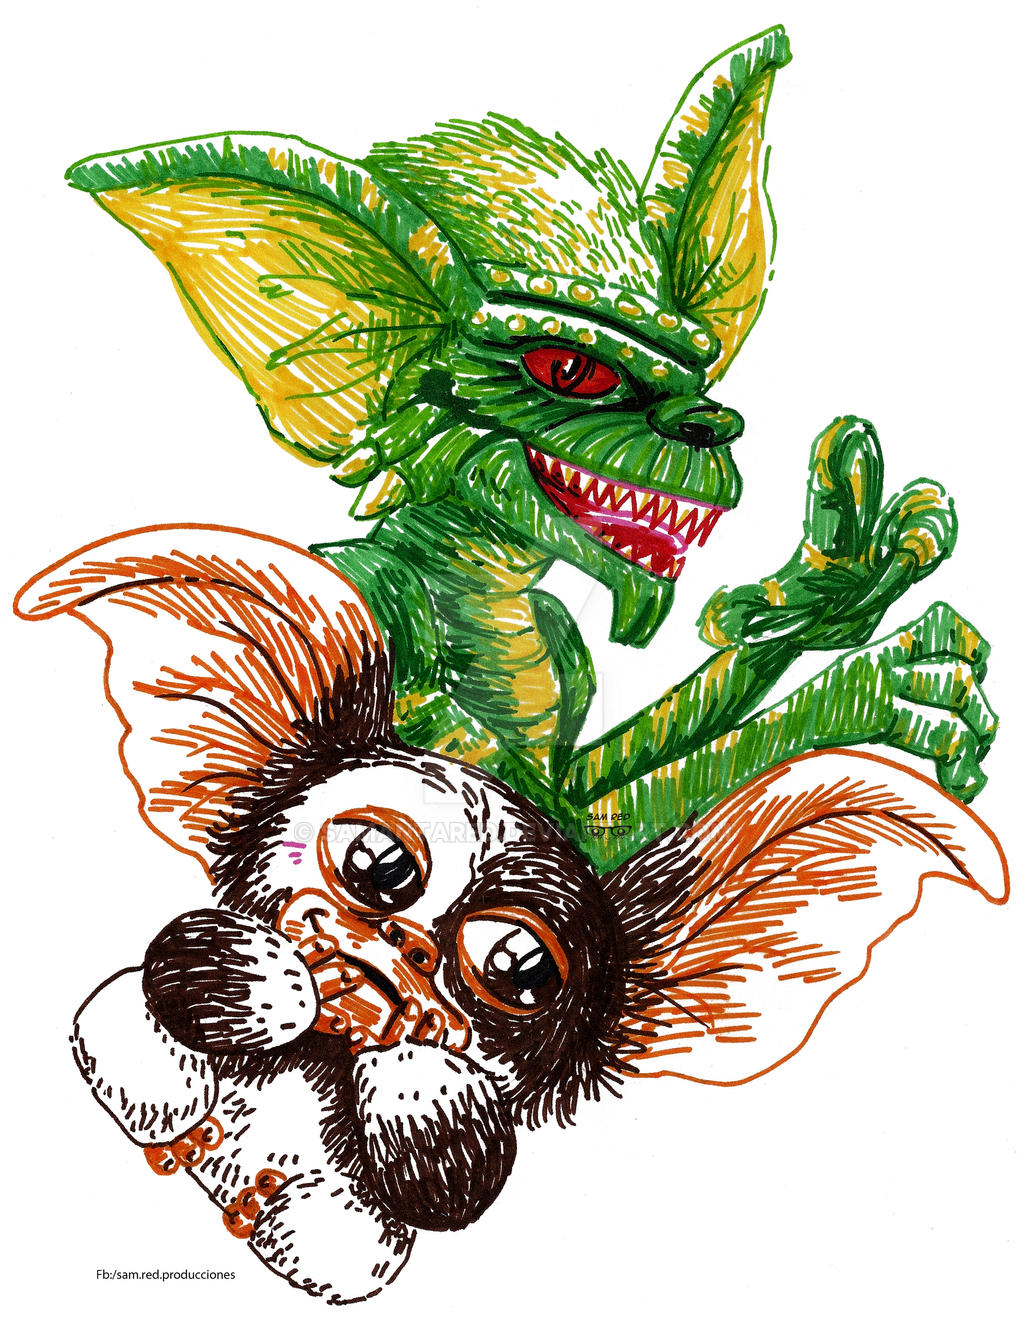 gremlins fan art by samantared on deviantart